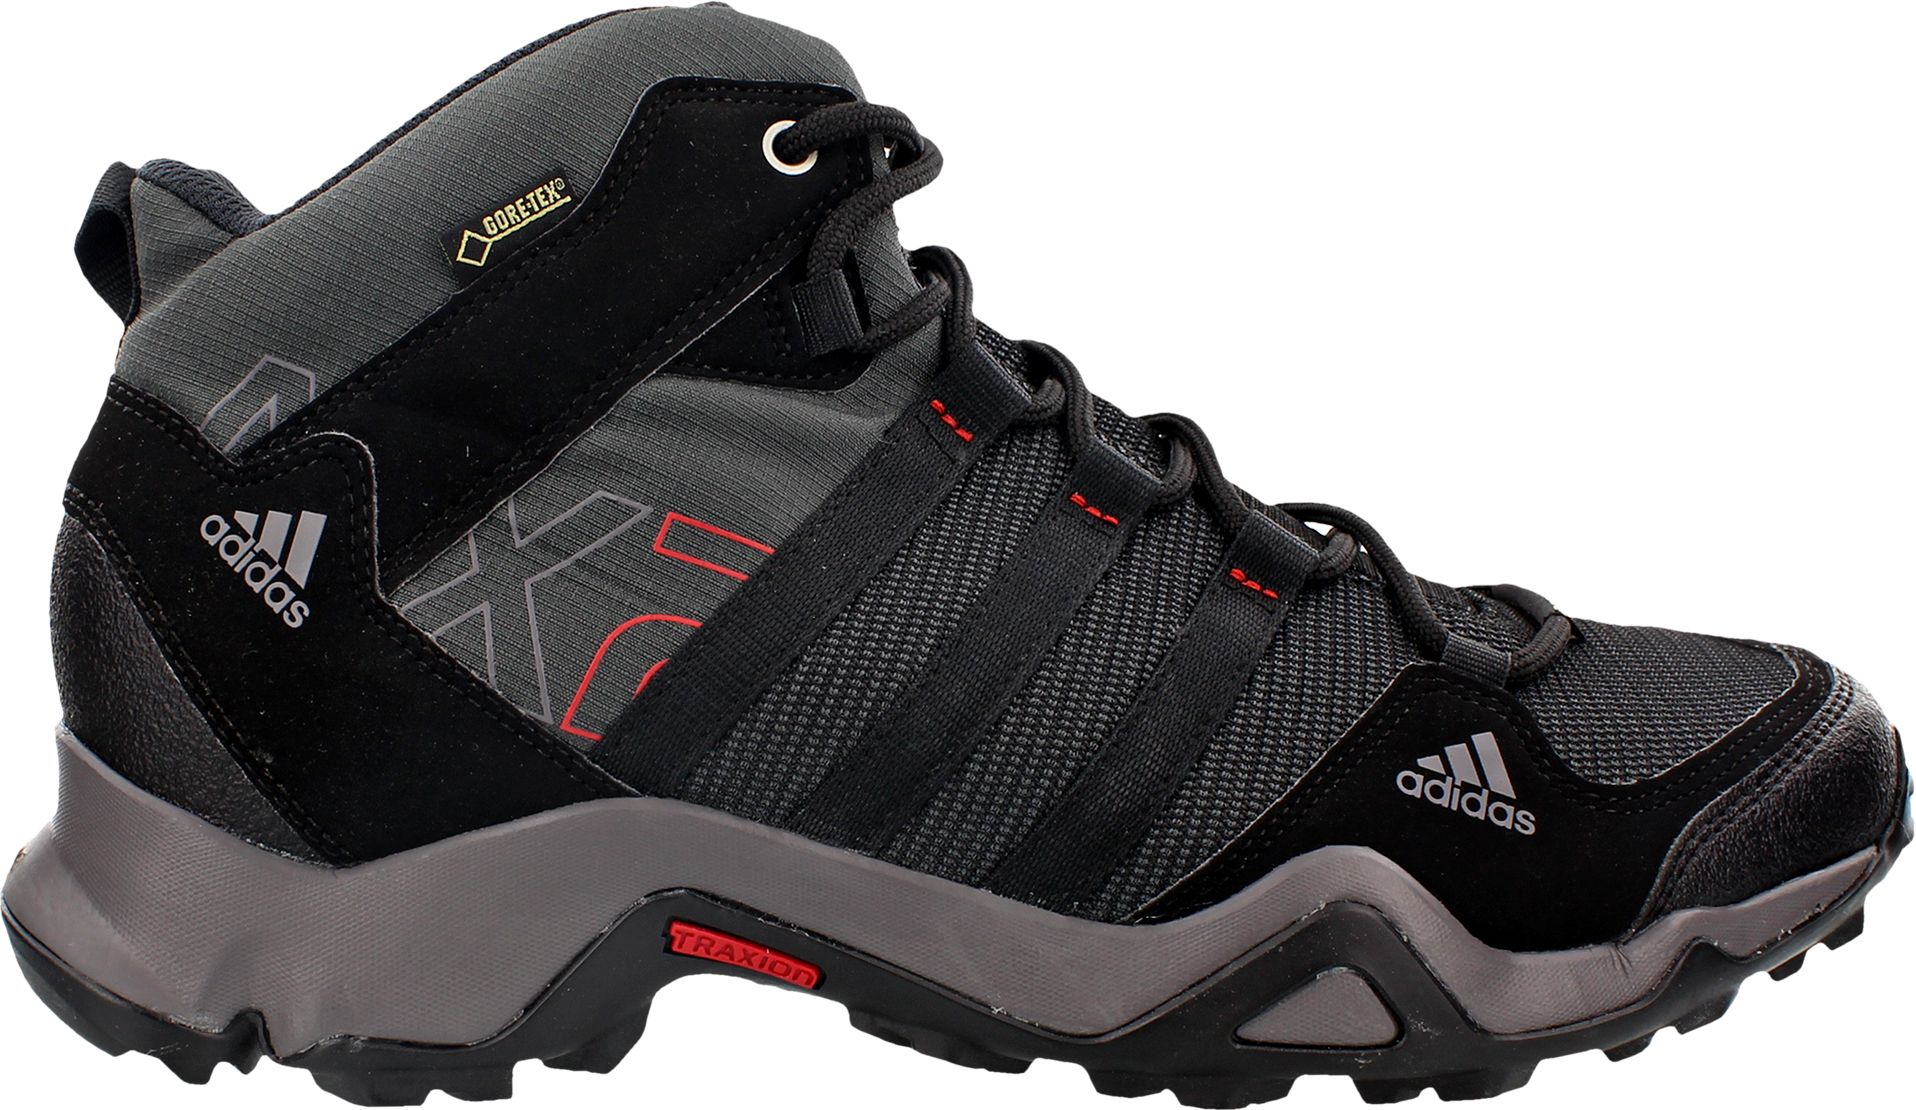 adidas Outdoor Men's AX 2 Mid GORE-TEX Hiking Boots| DICK'S ...